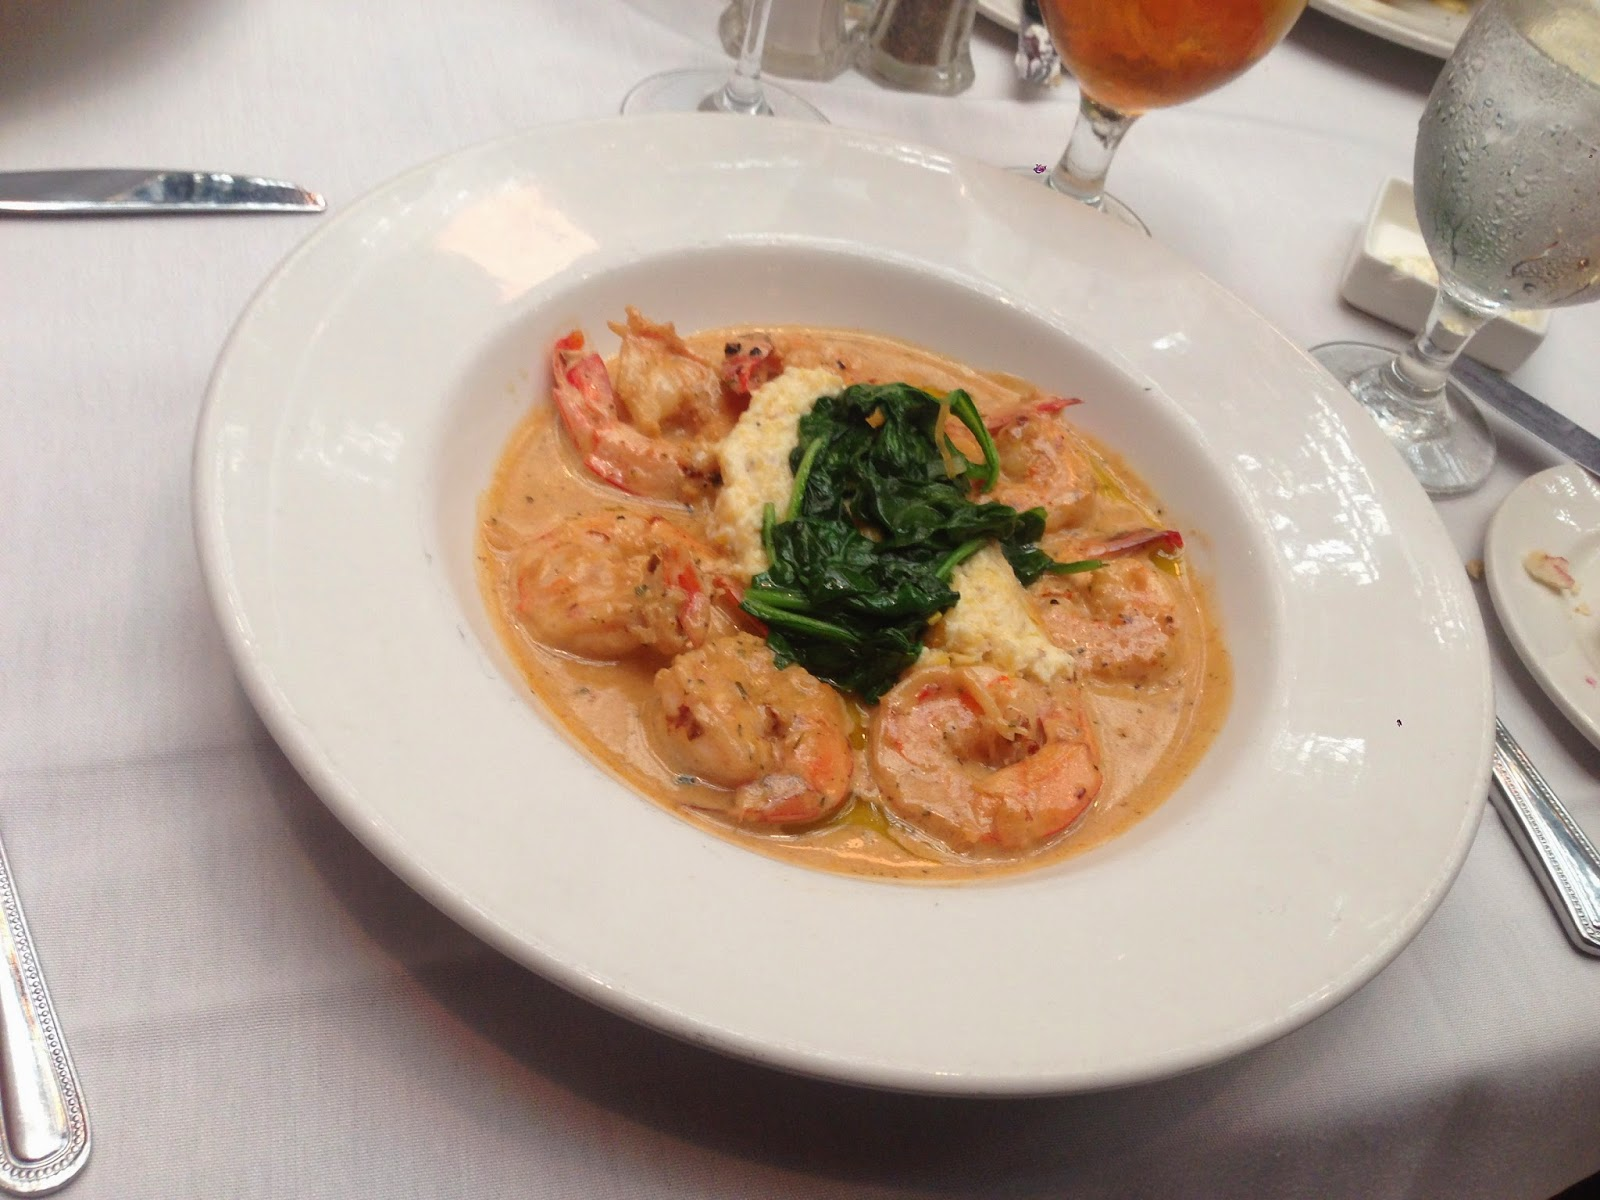 Juban's Shrimp & Grits: Gulf shrimp broiled in New Orleans barbeque butter, with garlic cheese grits,  and spinach primavera